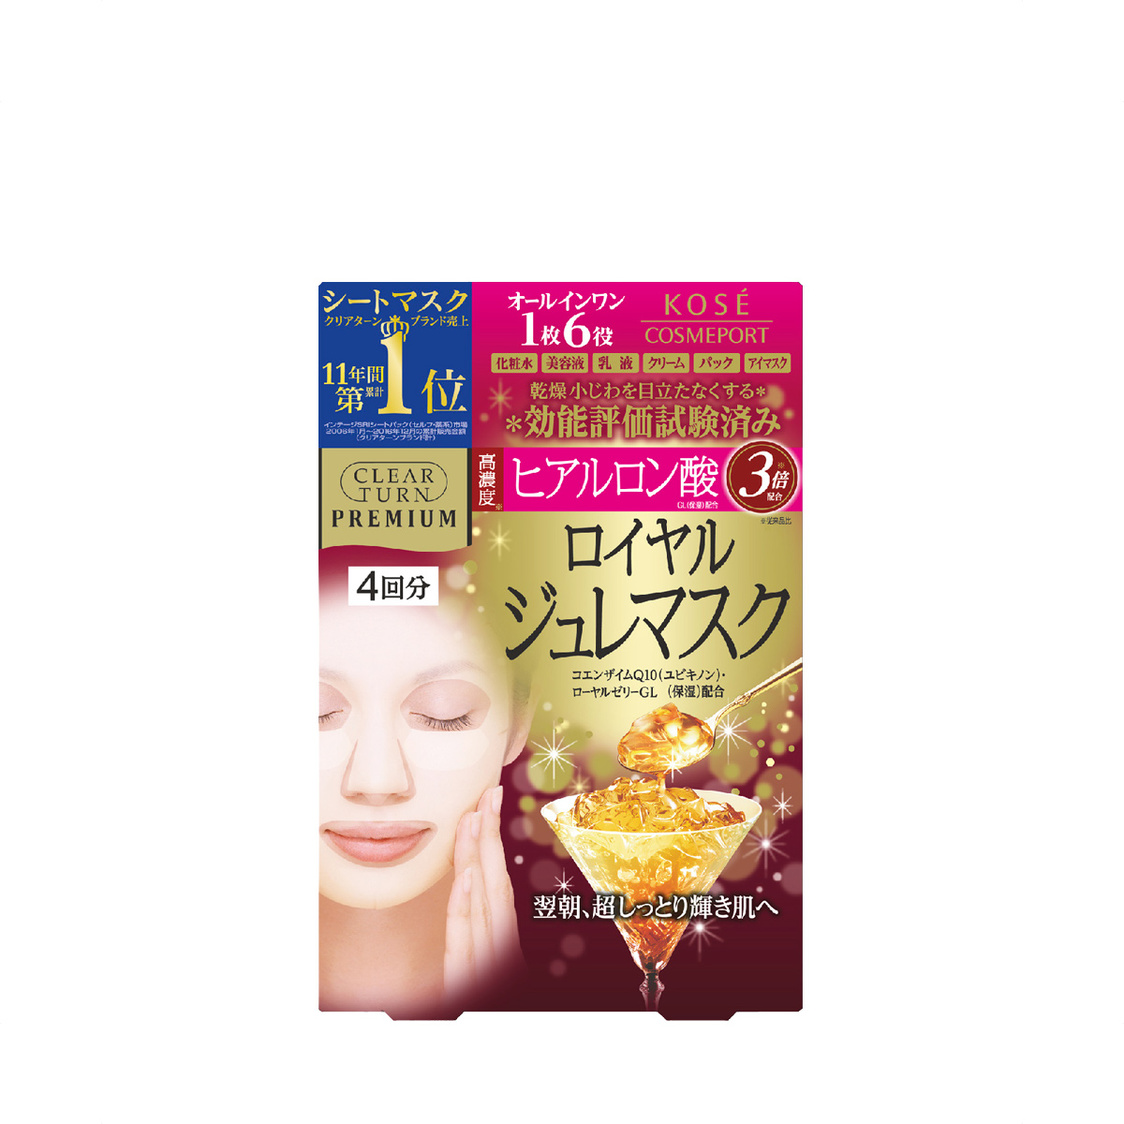 Clear Turn Premium Royal Jelly Mask Hyaluronic Acid